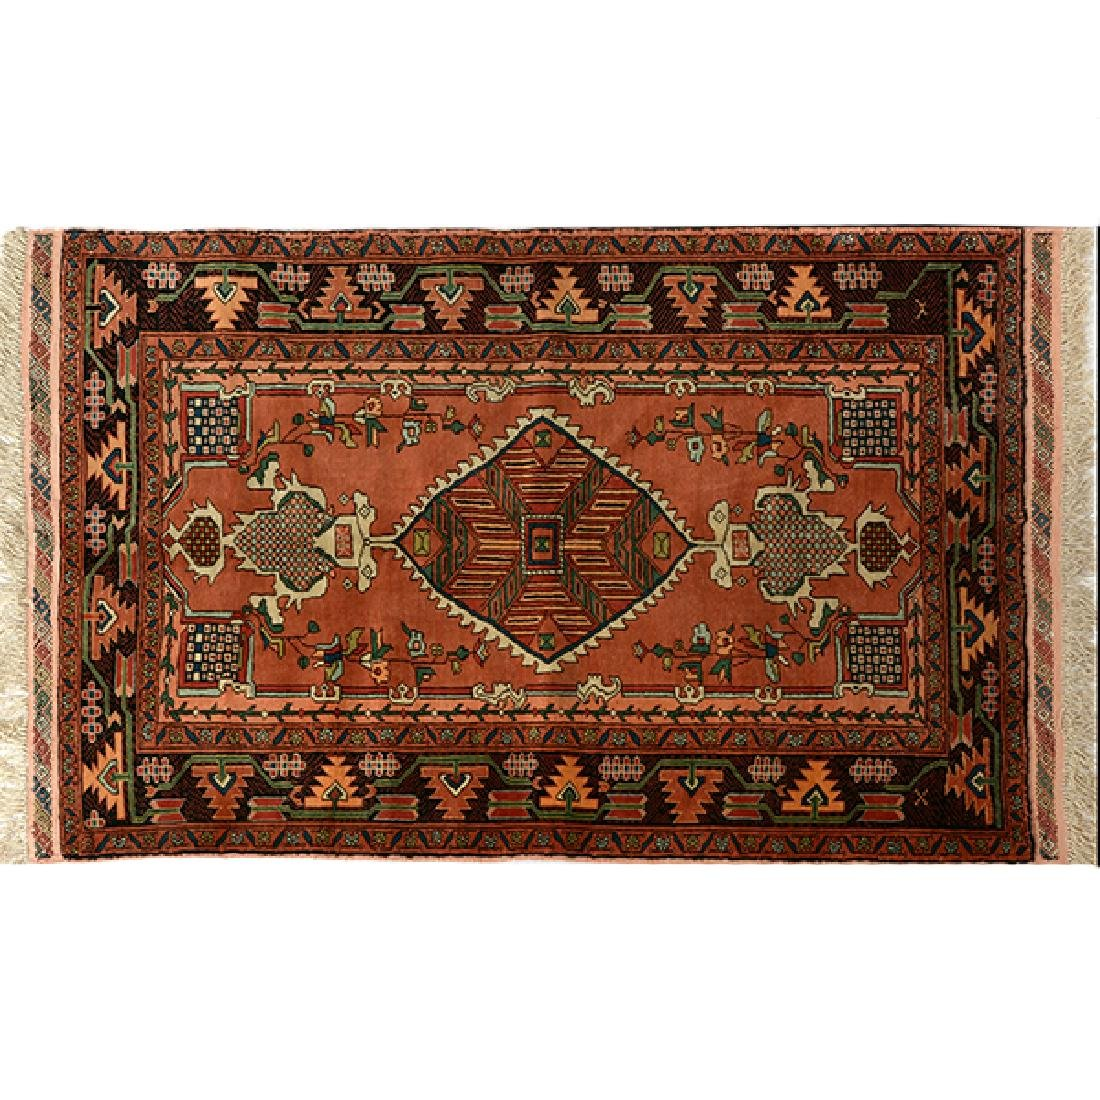 Egyptian Silk Prayer Rug: 2 feet 6 inches x 3 feet 10